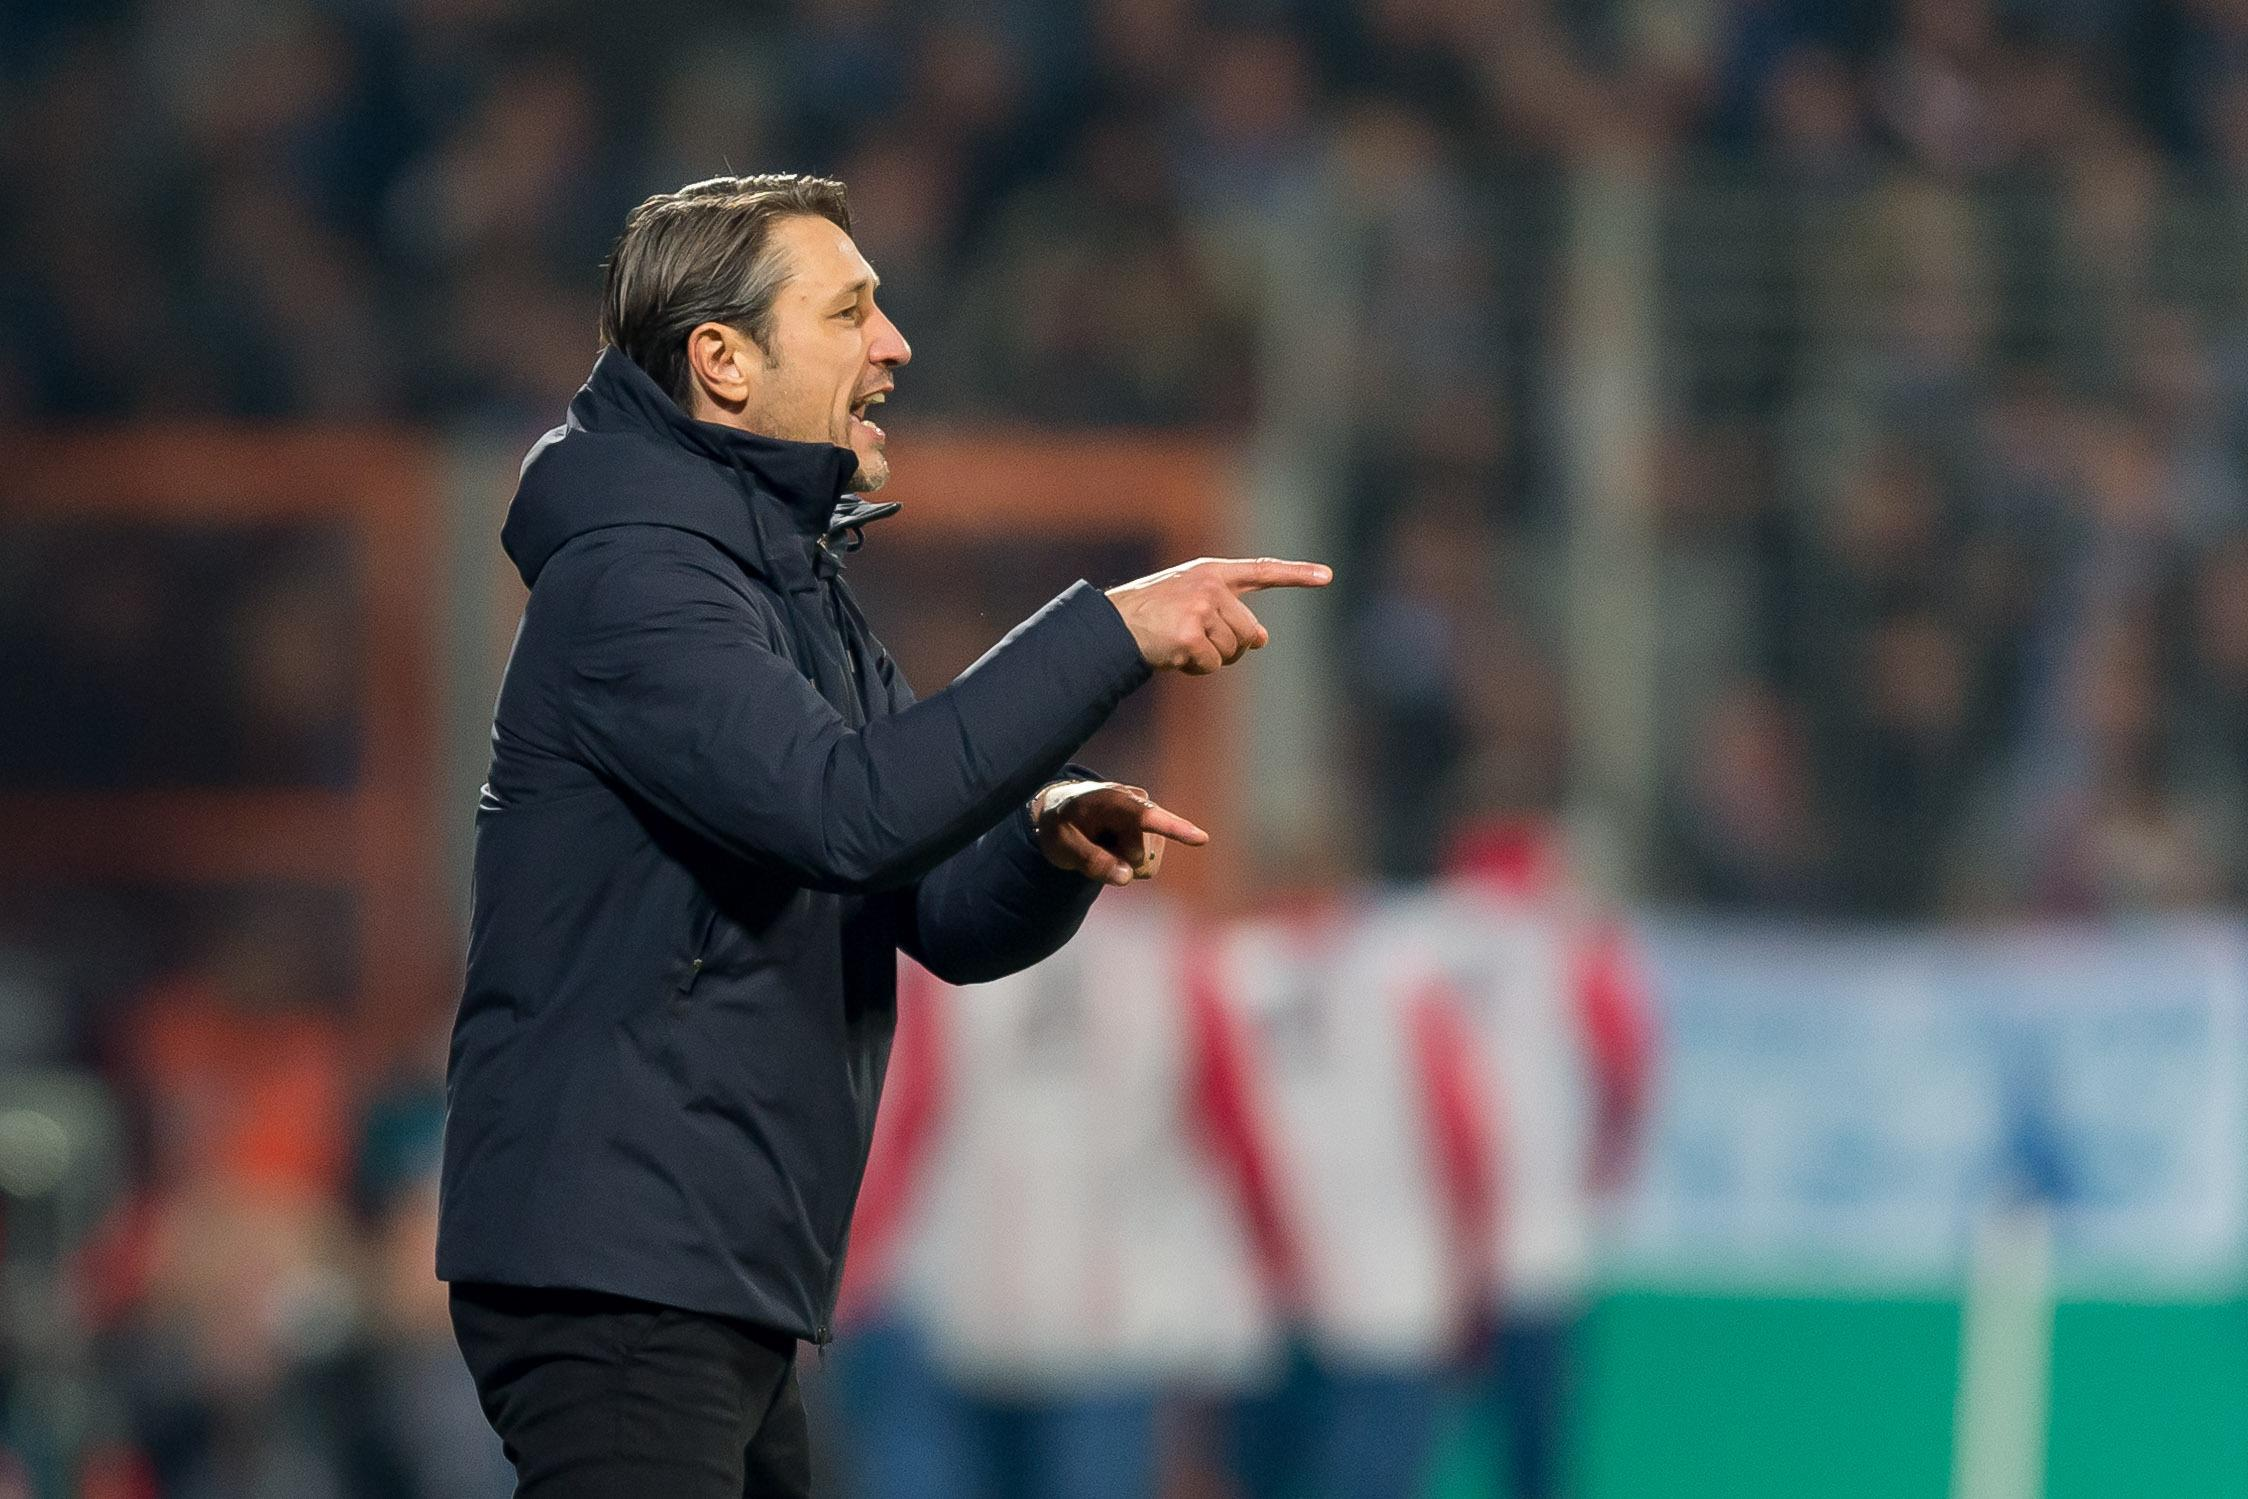 Niko Kovac Fired by Bayern Munich After 5-1 Loss to ...